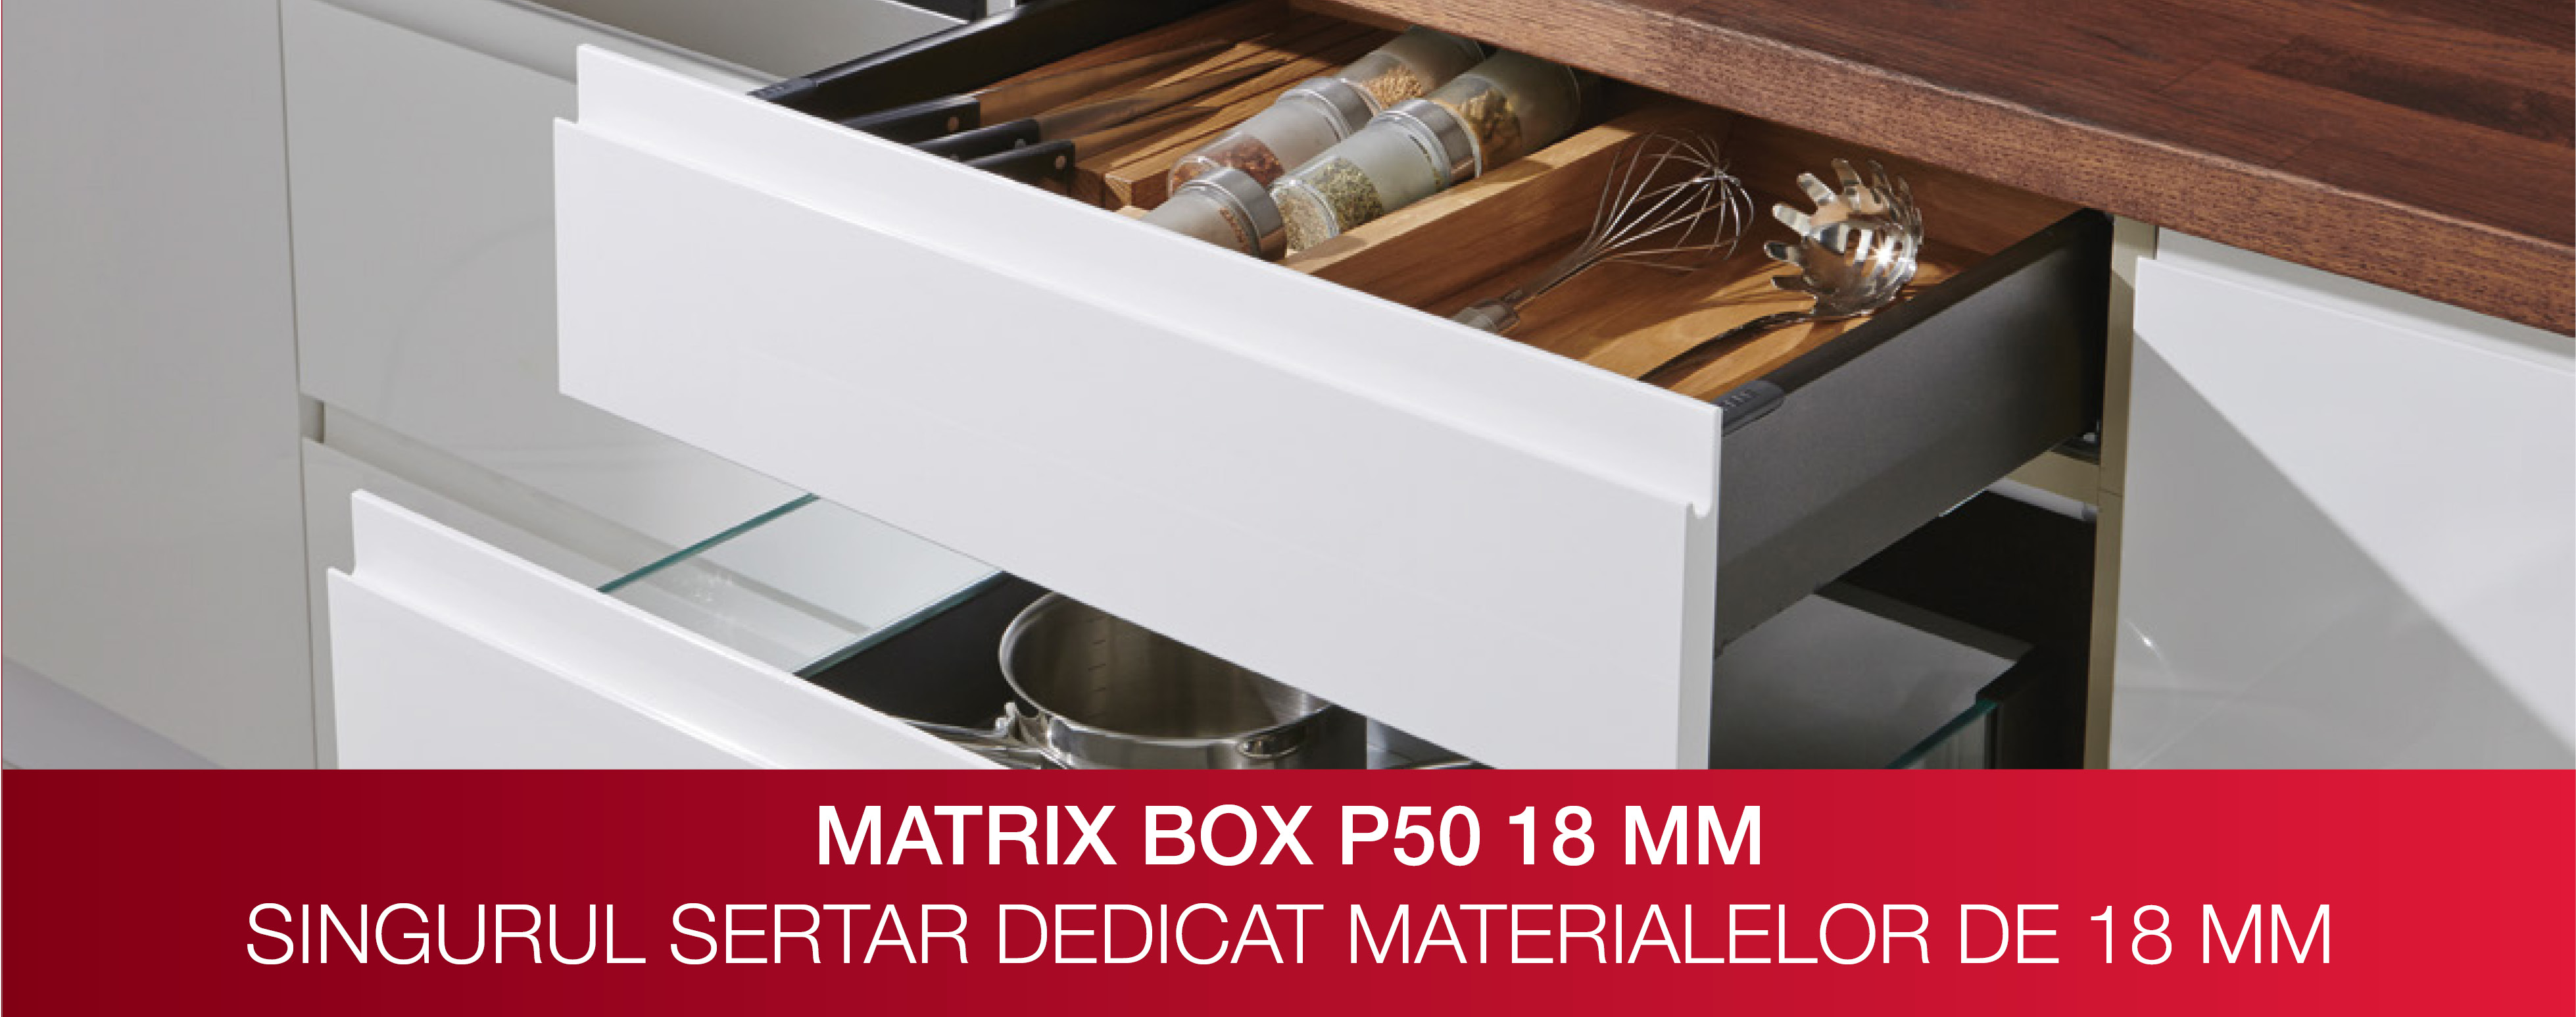 Matrix Box P